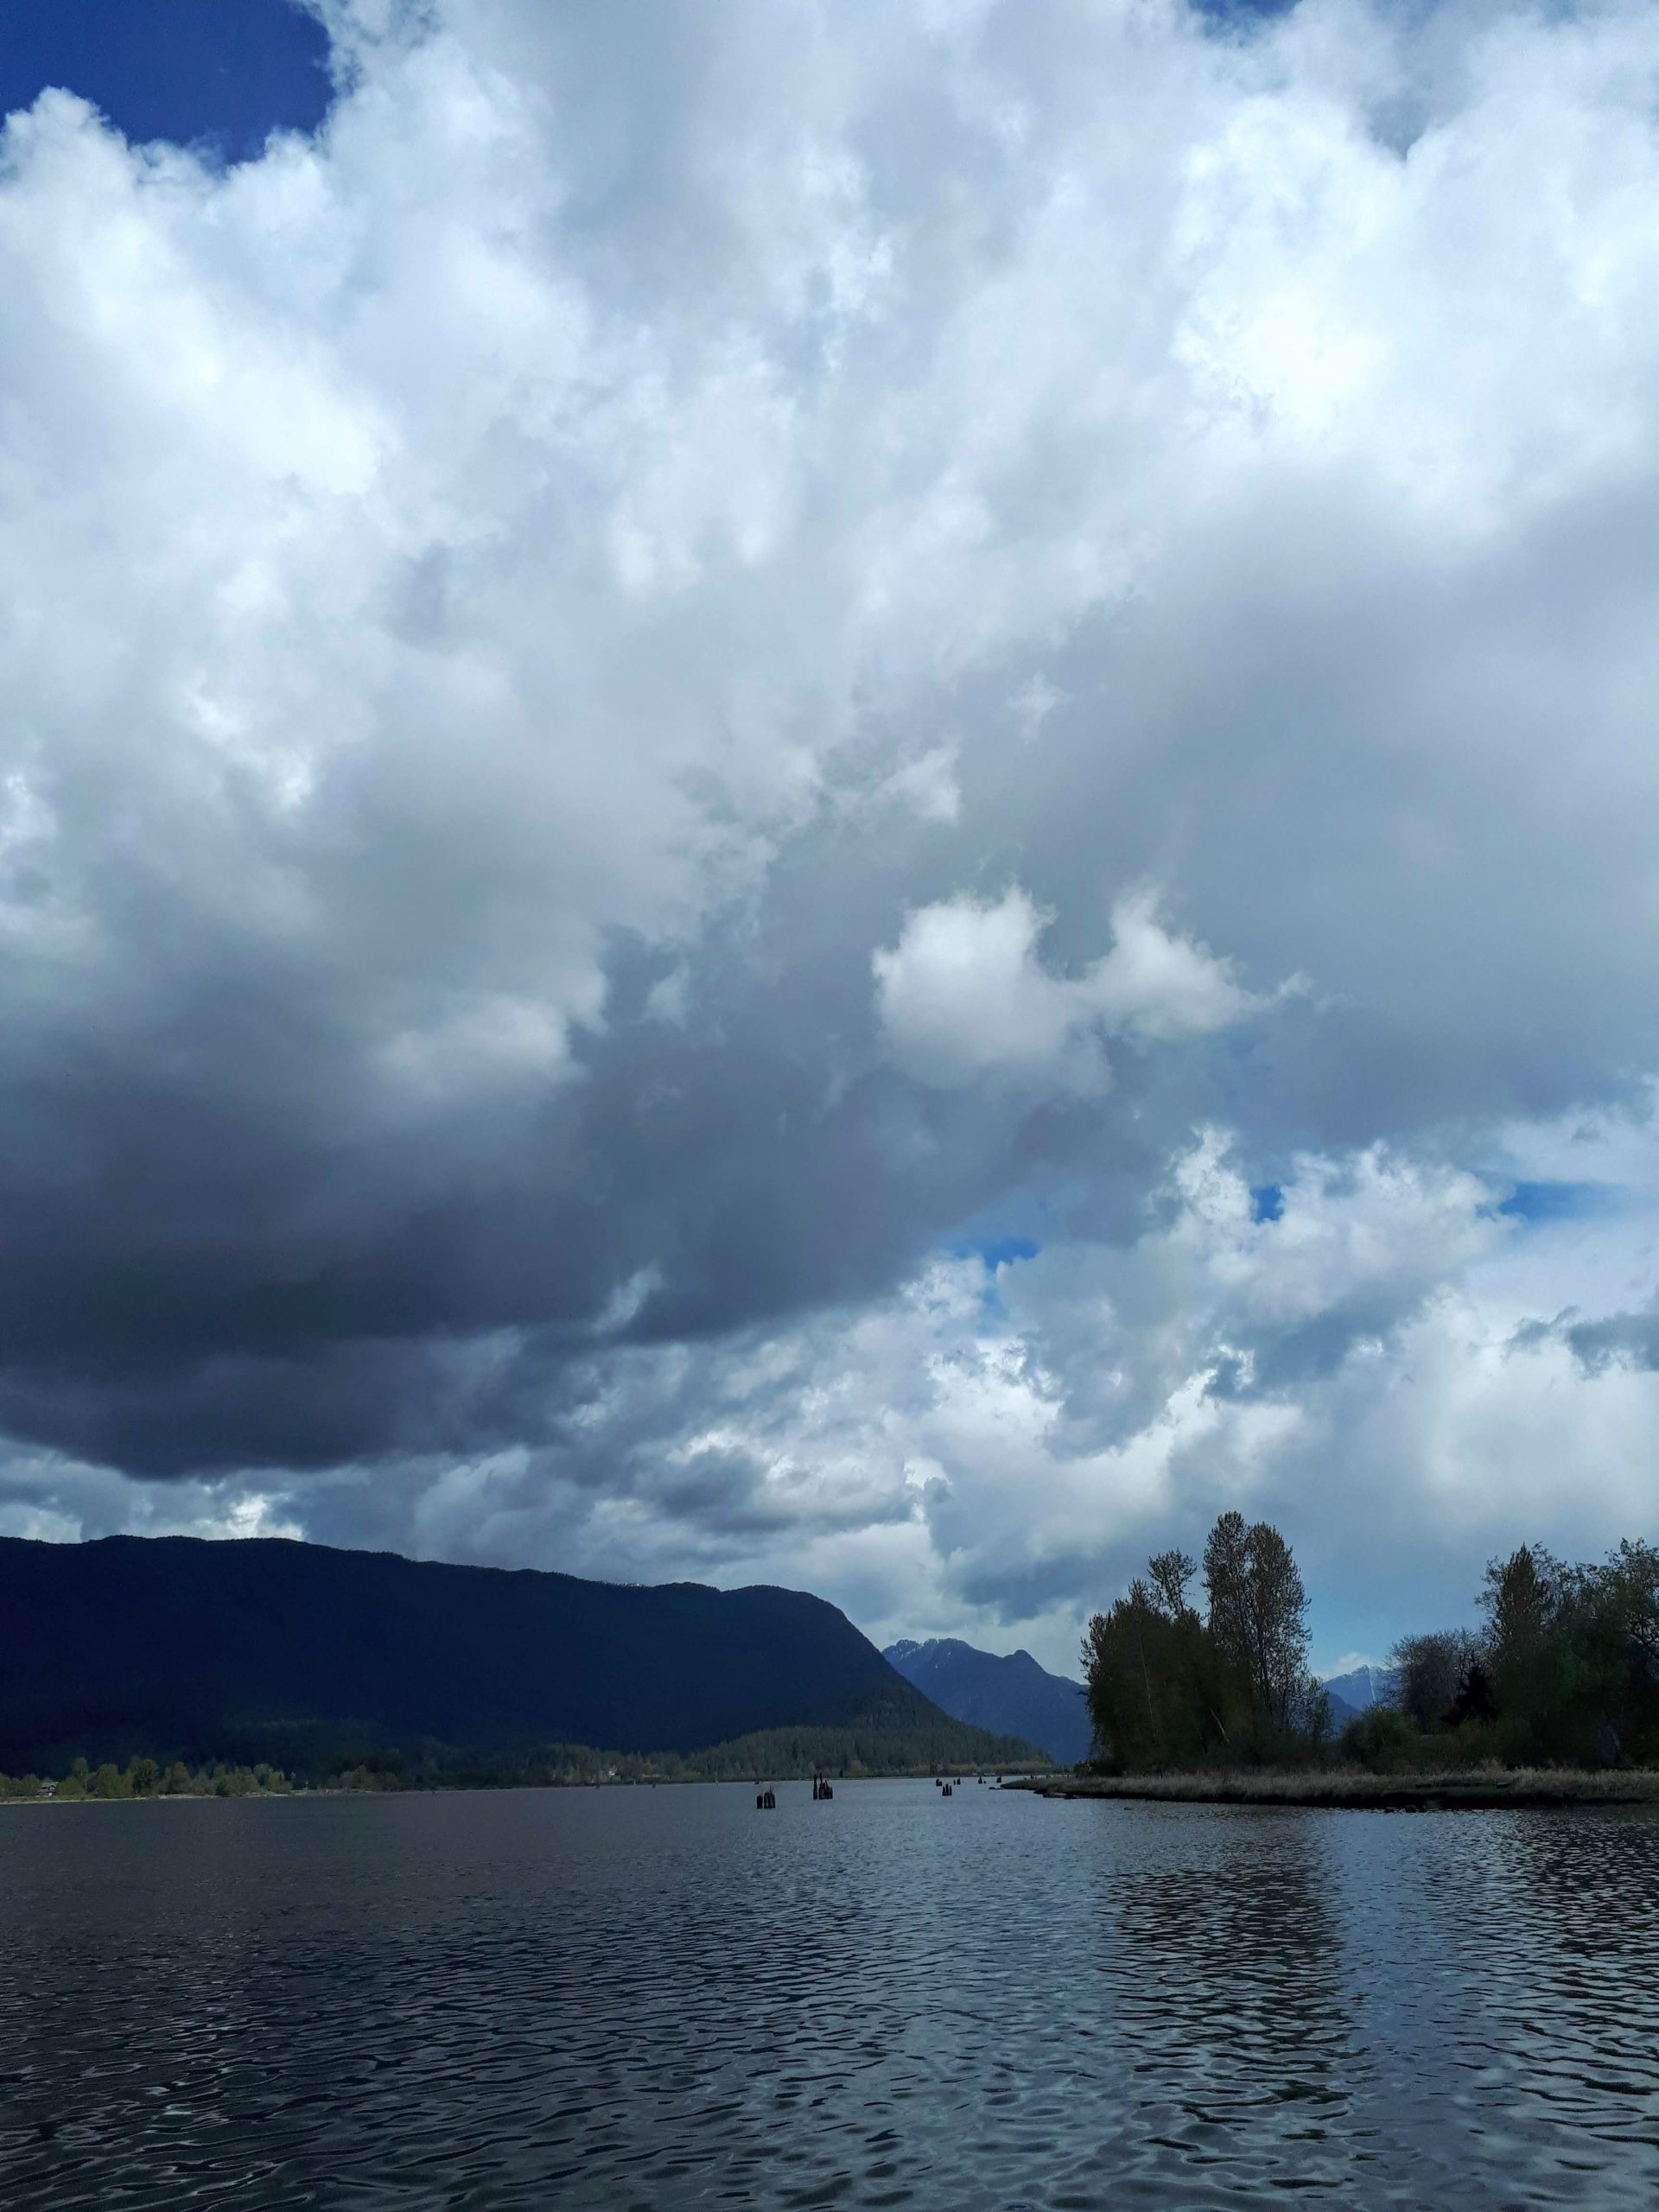 The view from the docks at the Pitt Meadows Marina